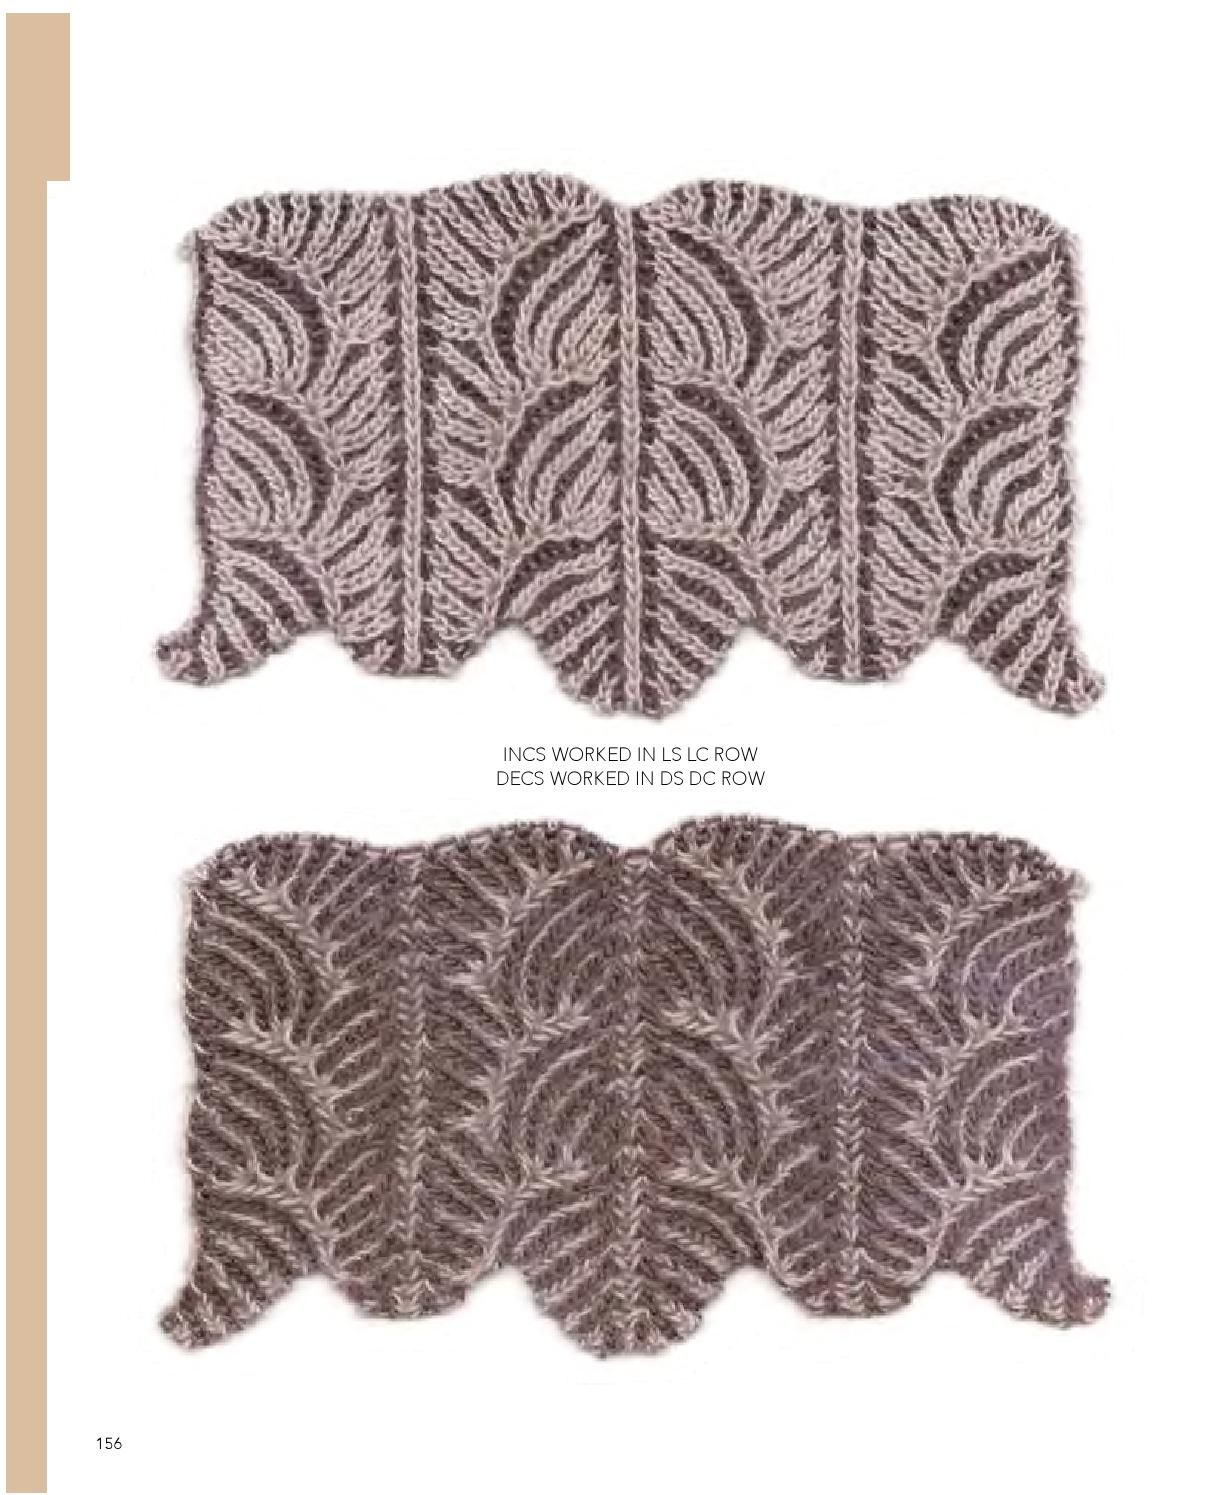 Brioche Knitting Tutorial : Knitting fresh brioche popular books and dark side